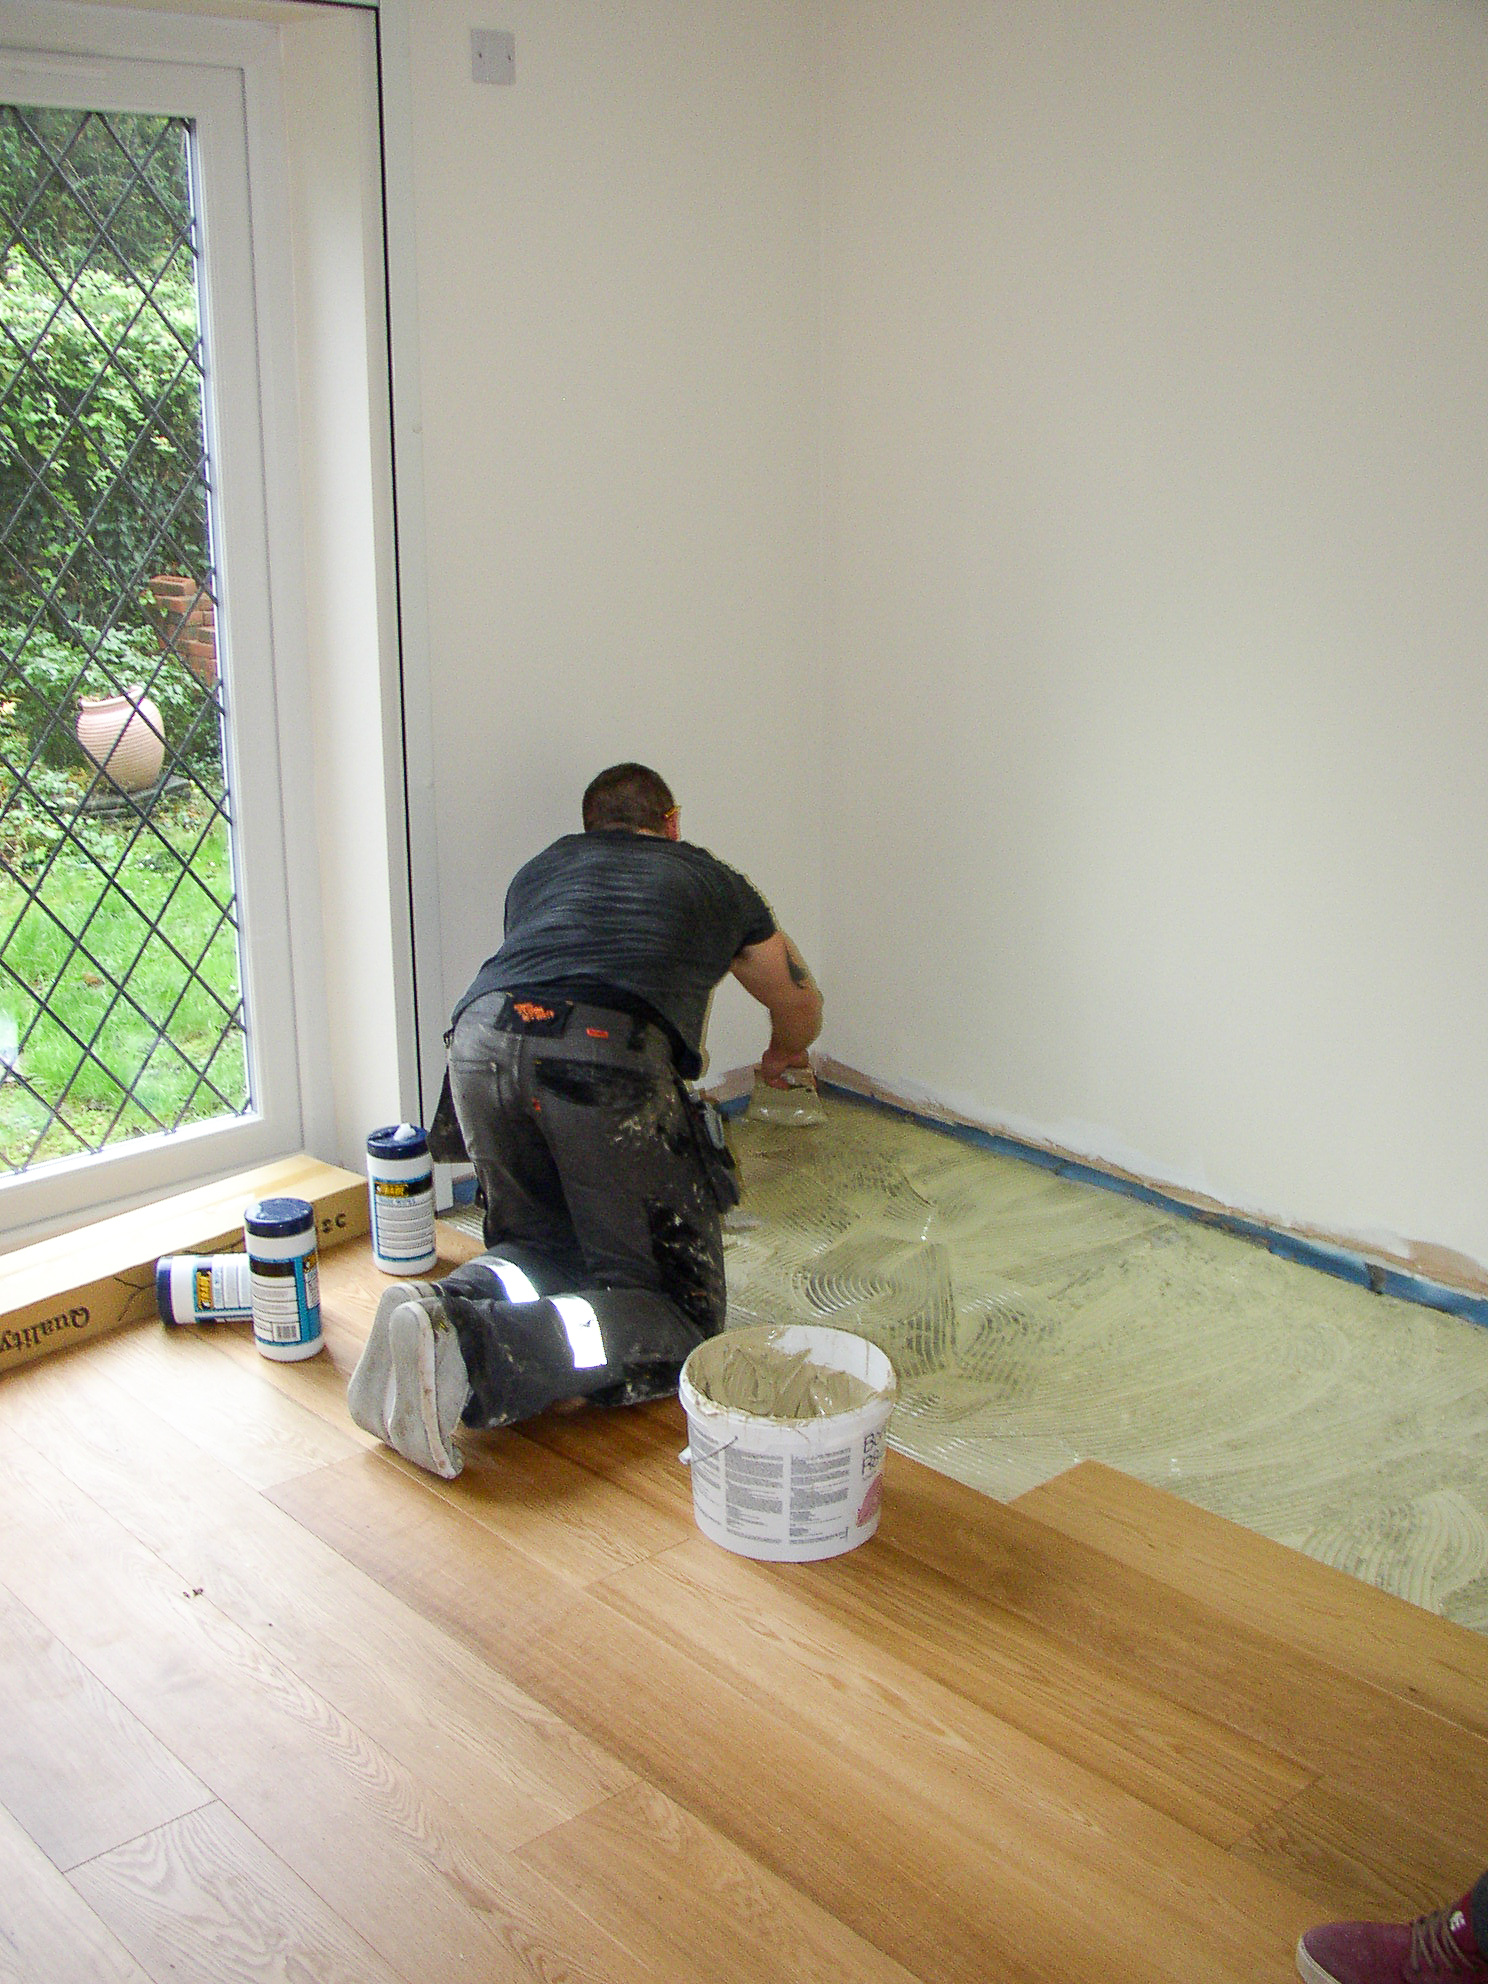 Re-laying a floor after extending